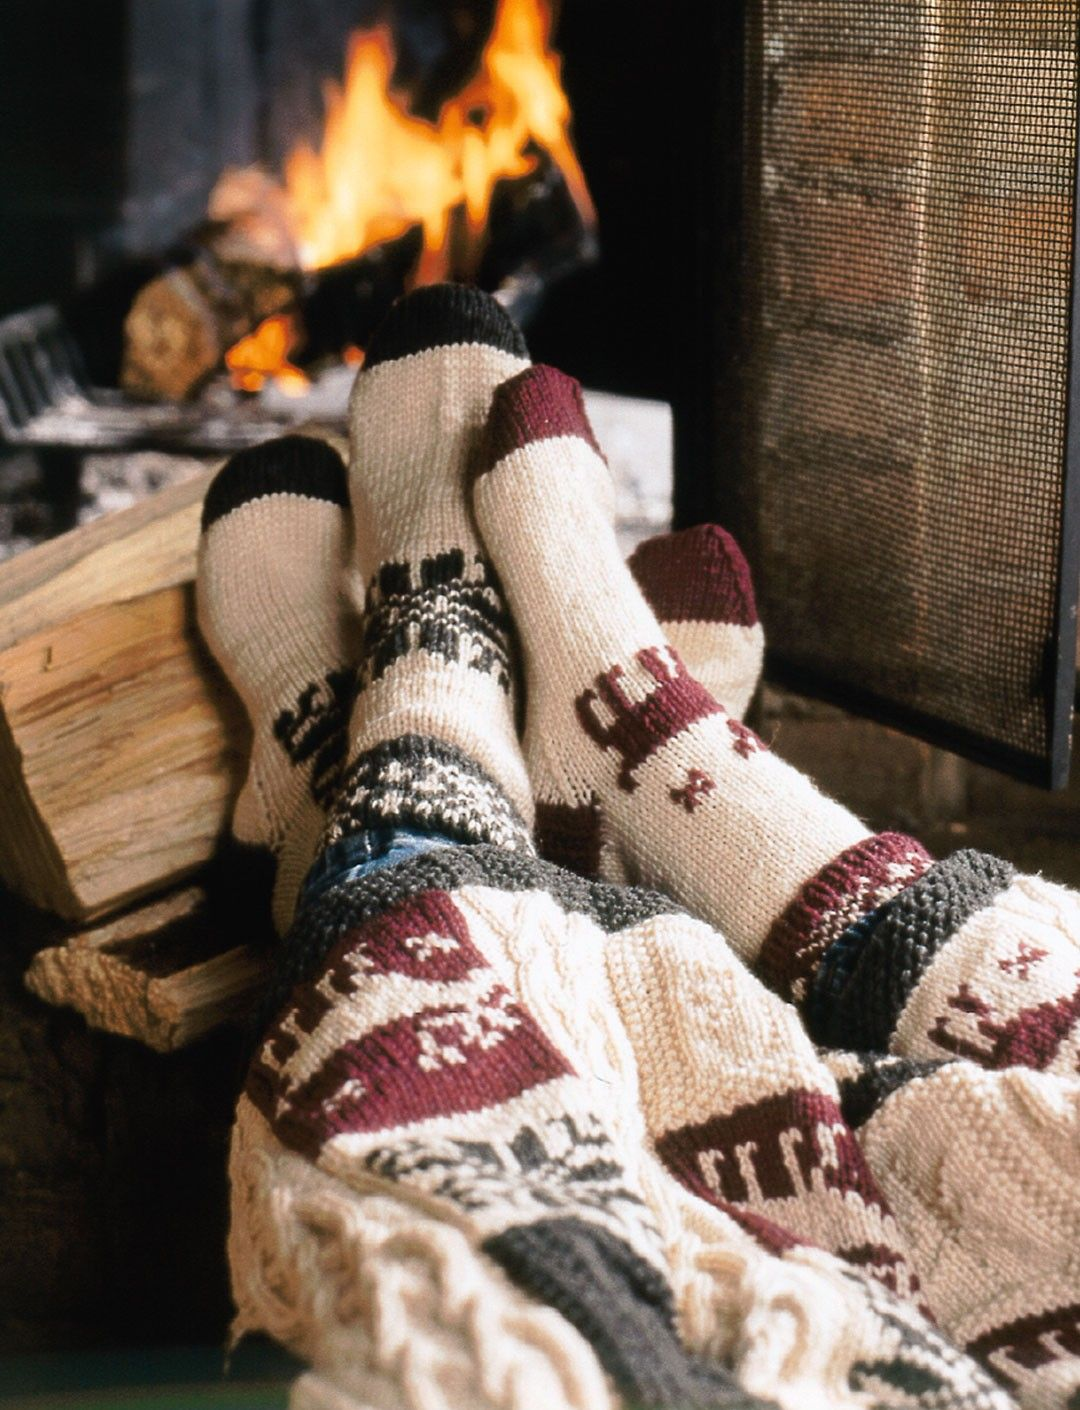 Yarnspirations patons socks patterns yarnspirations warm and cozy sock pattern with both a striped version and a rustic fair isle version wouldnt it be great if i enjoyed knitting socks bankloansurffo Image collections